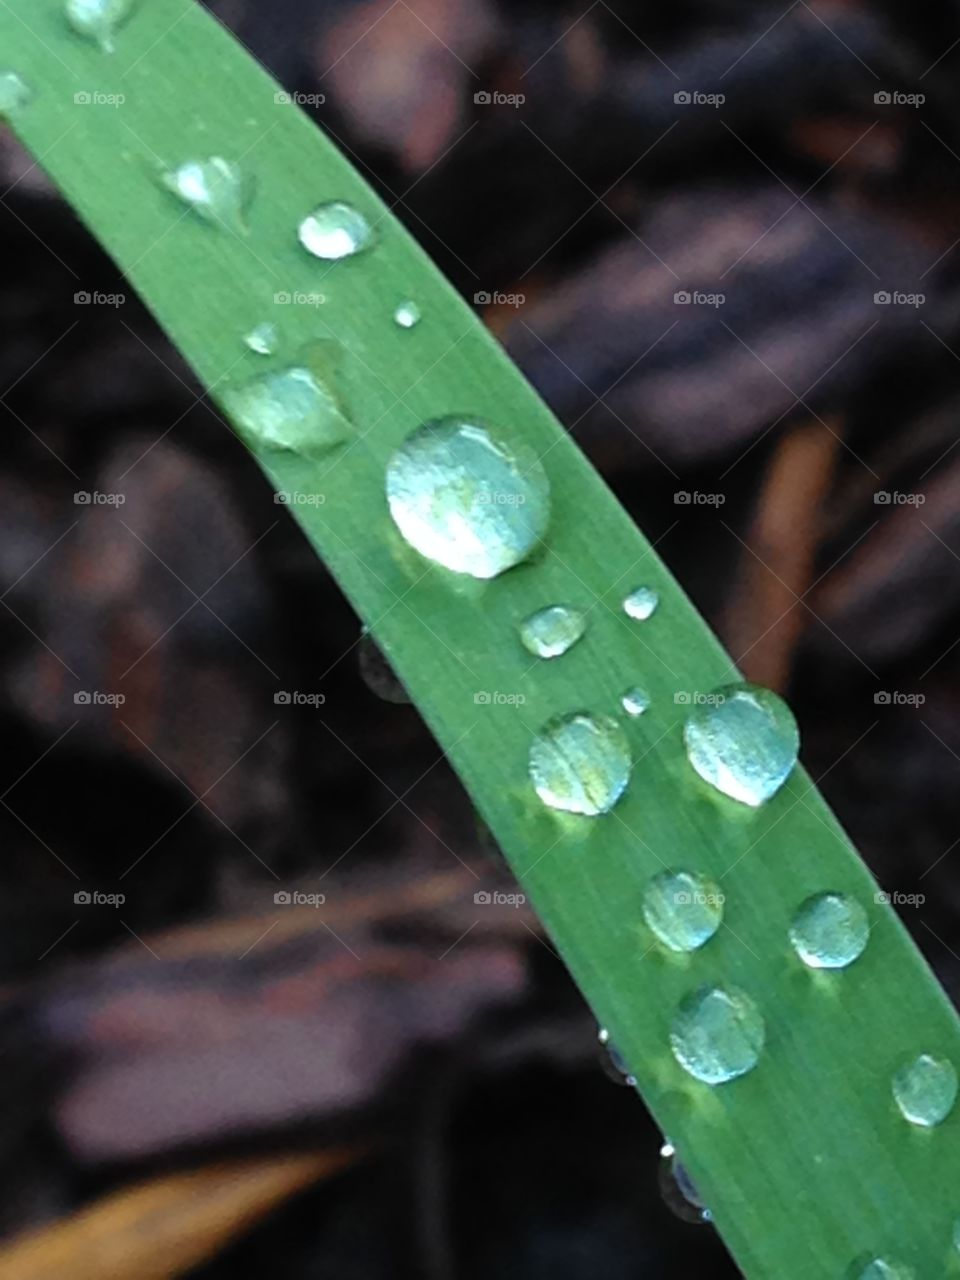 After the rain. Raindrops on a day lily stem